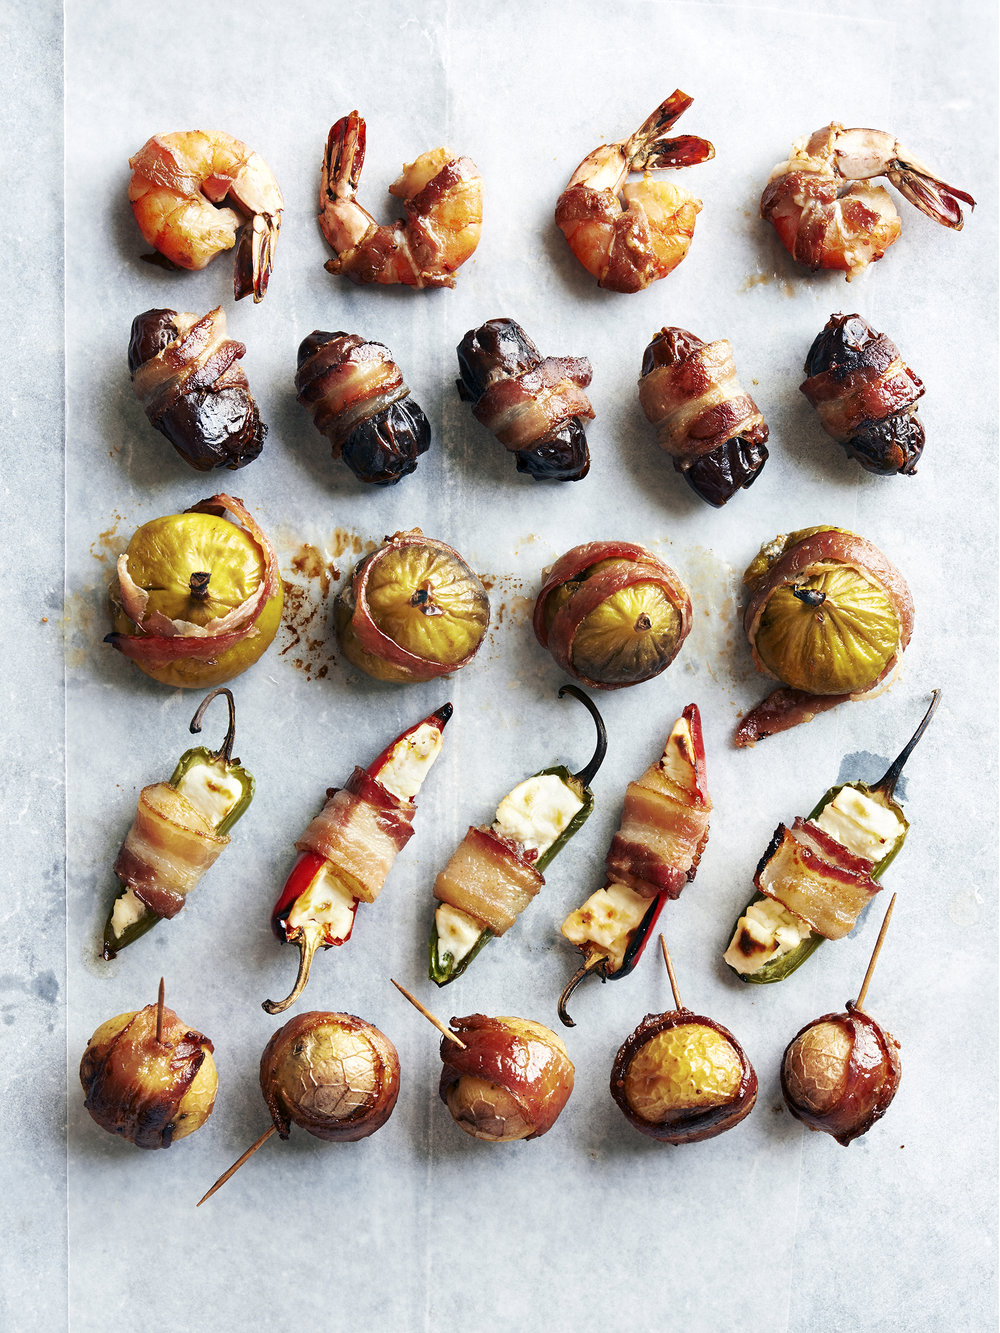 BACON_WRAPPED_THINGS_1713 1_Film.jpg